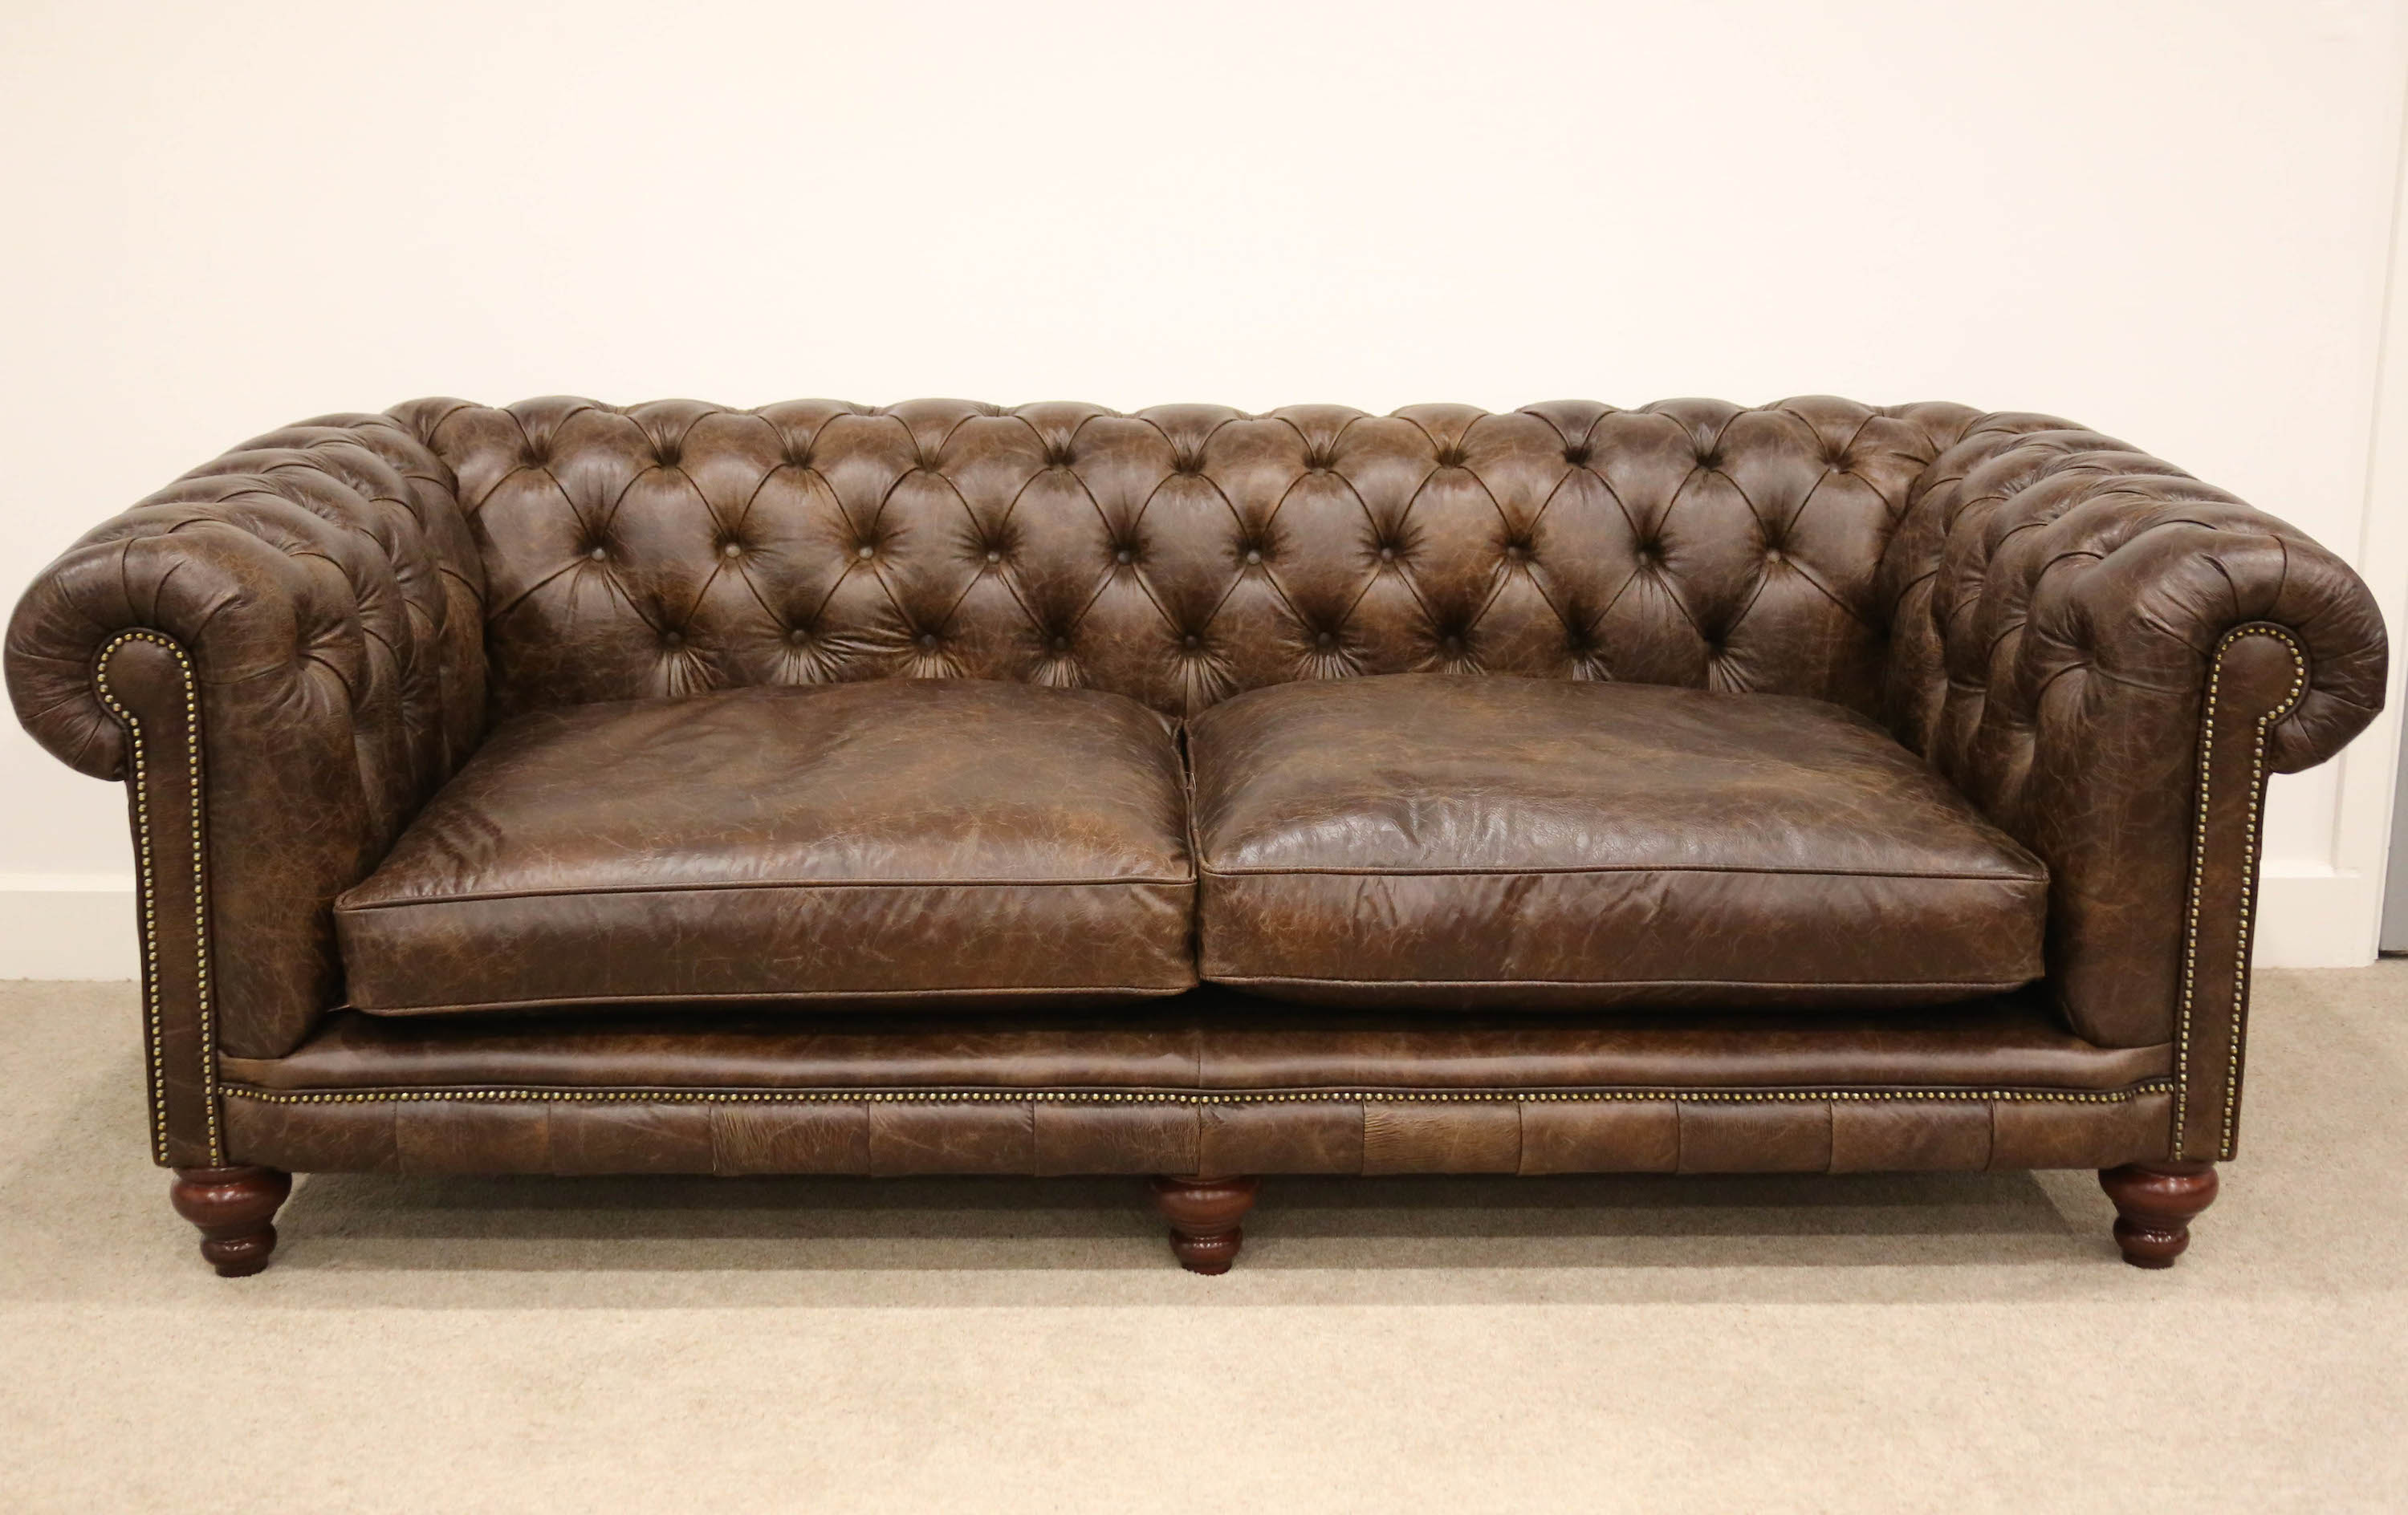 chesterfield furniture history. Chesterfield Sofa A Part Of Furniture History E